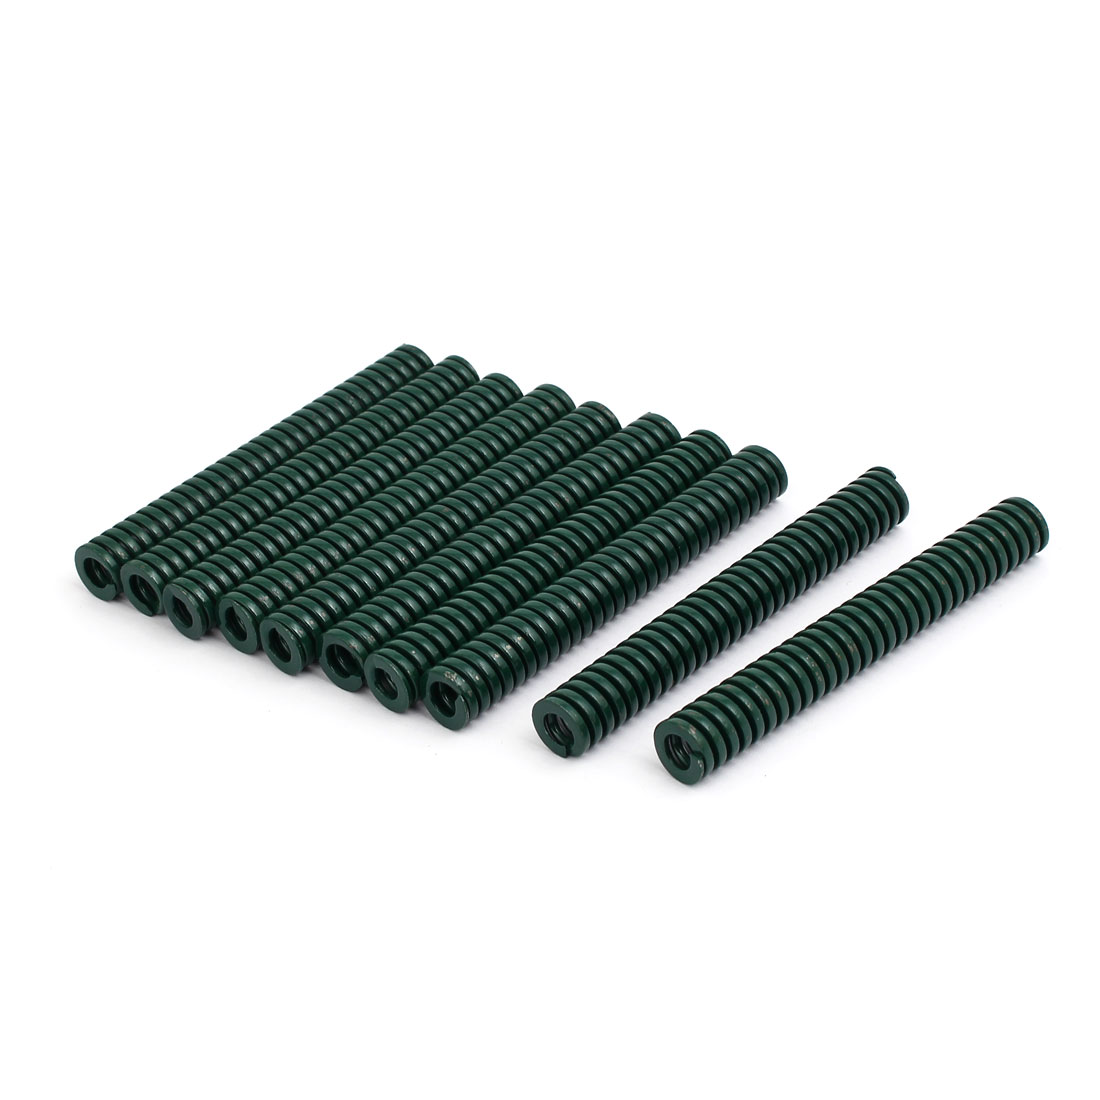 12mm OD 90mm Free Length Heavy Load Compression Mould Die Spring Green 10pcs